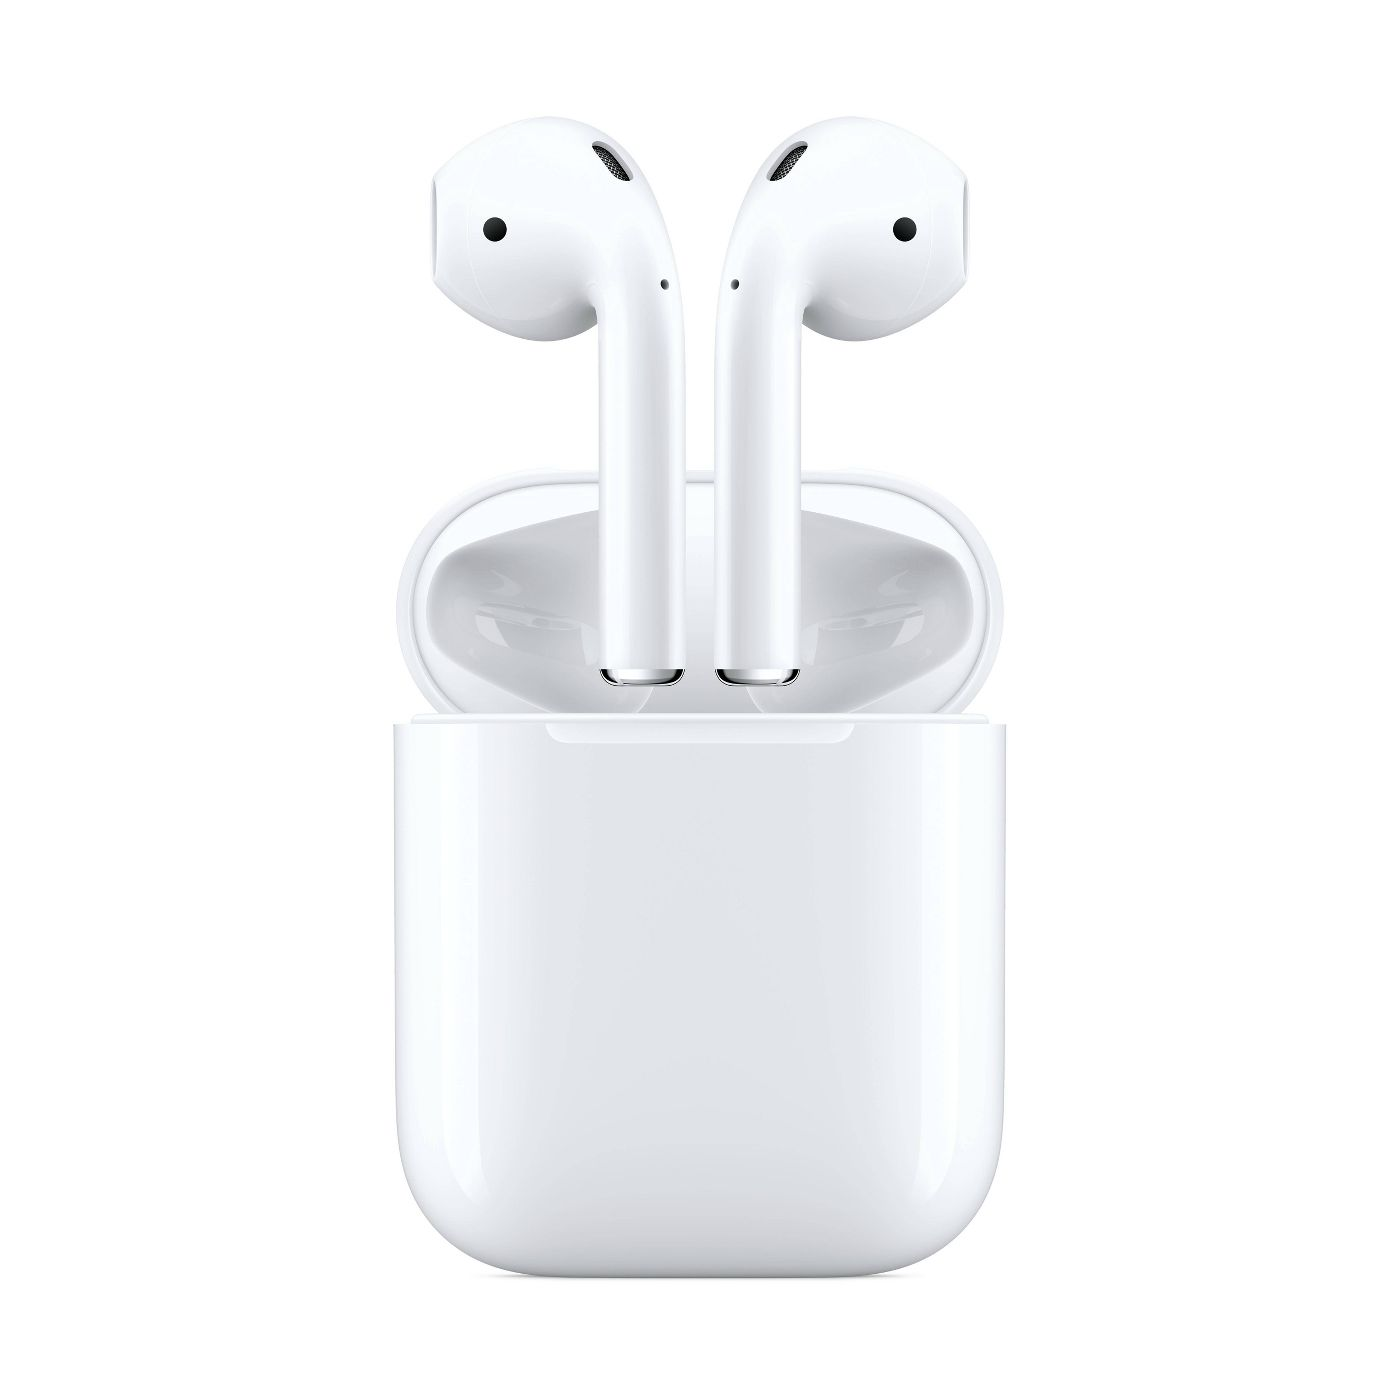 target deal days 2020 apple airpods